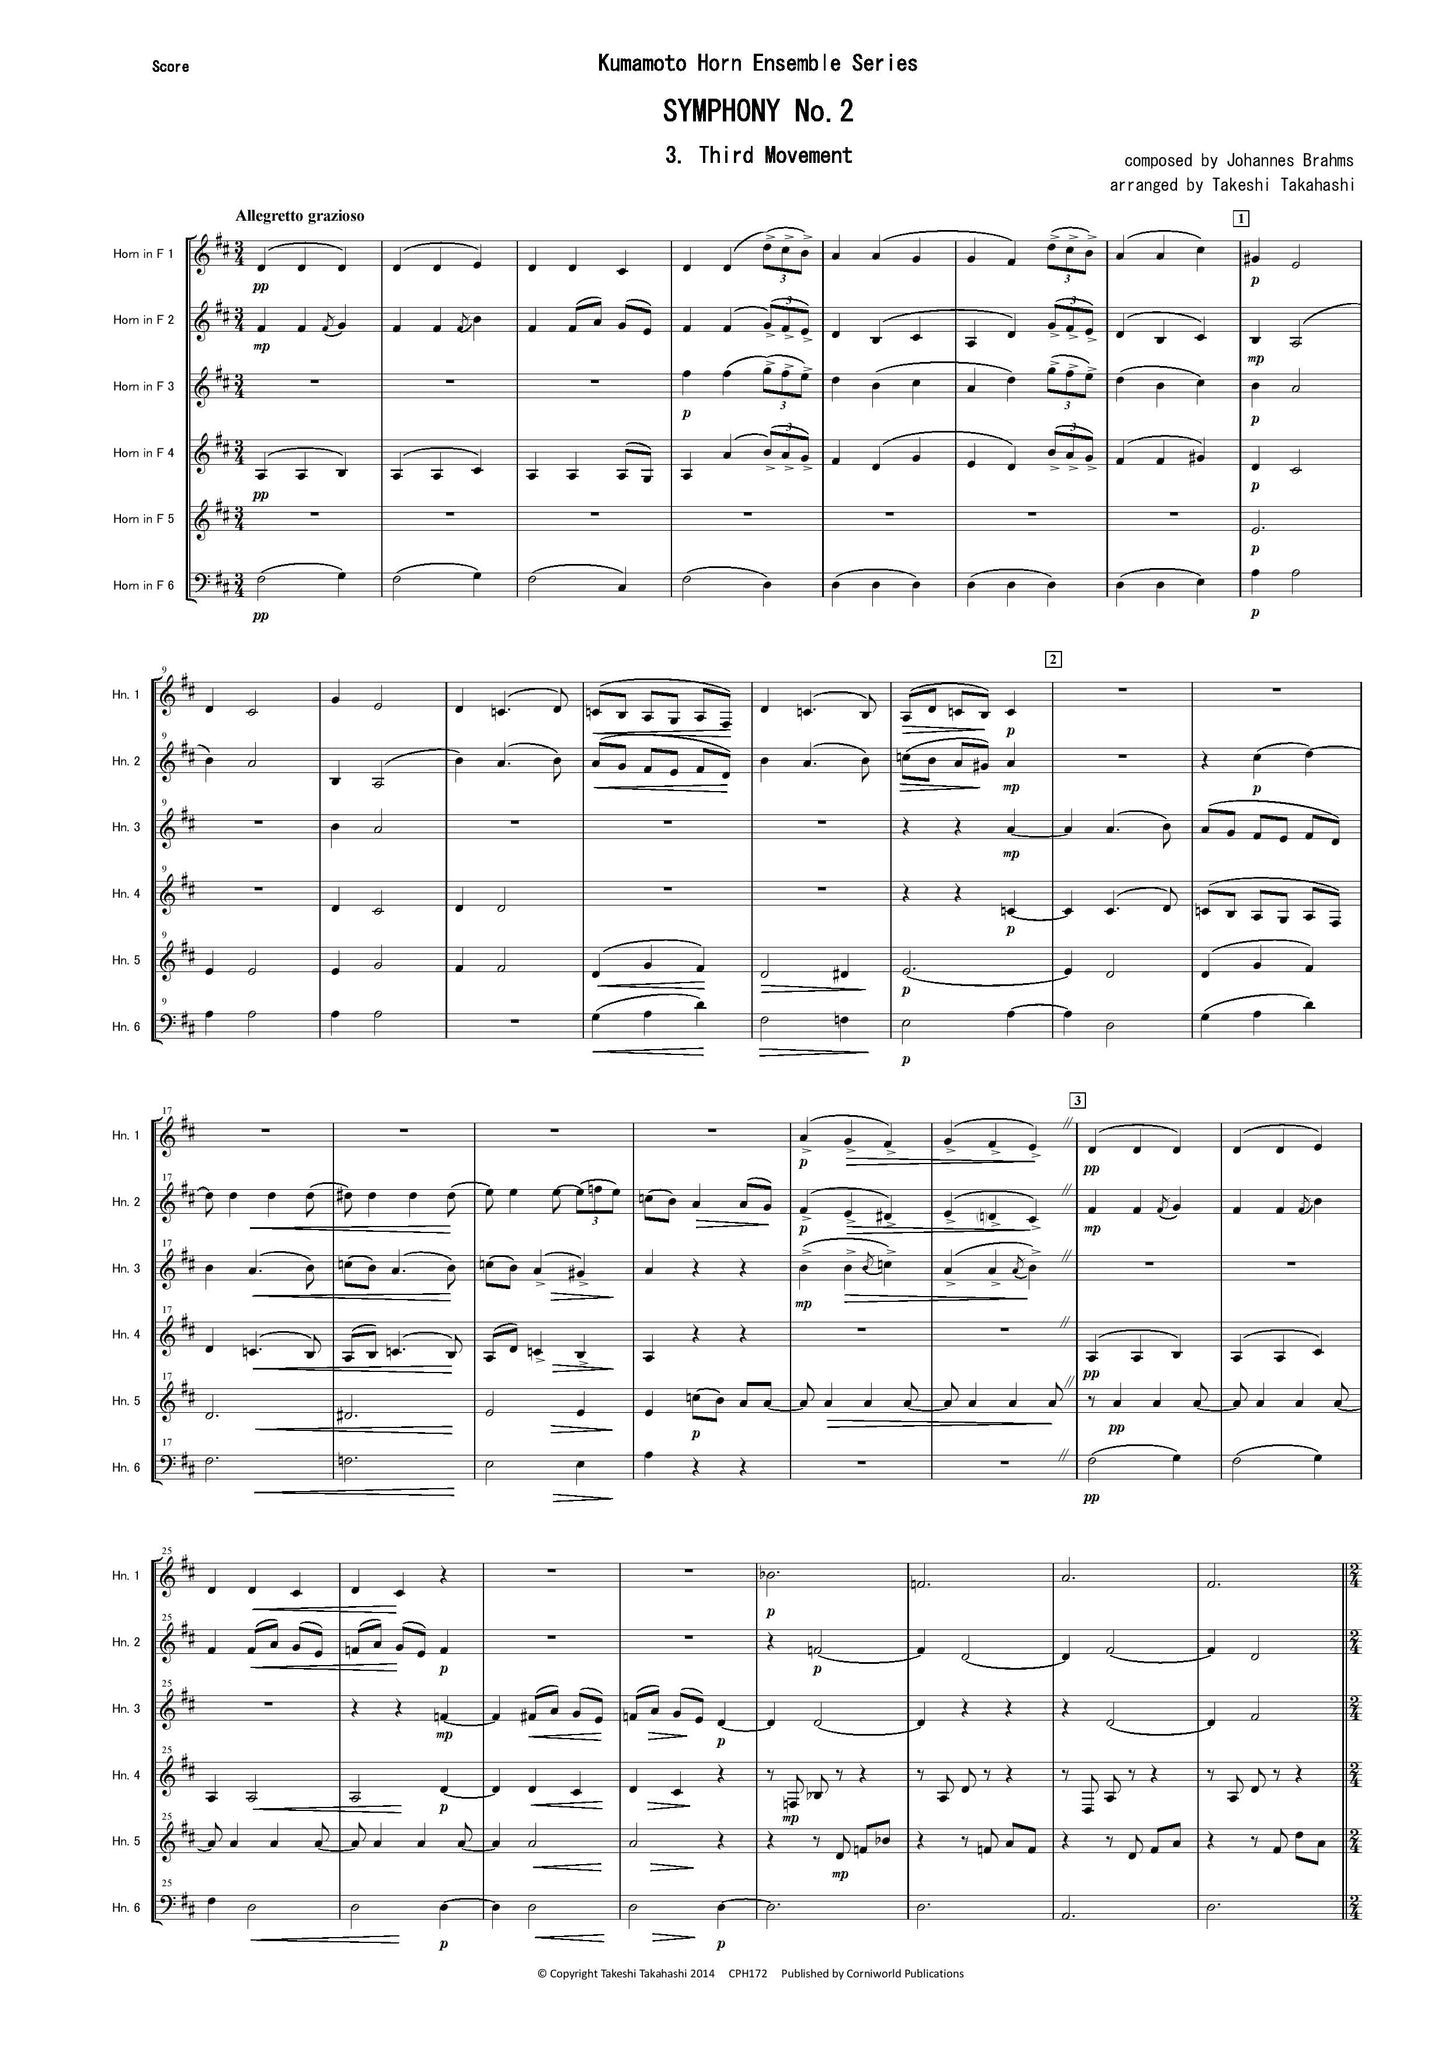 3rd Mvt from Symphony No.2 (Brahms) CPH172